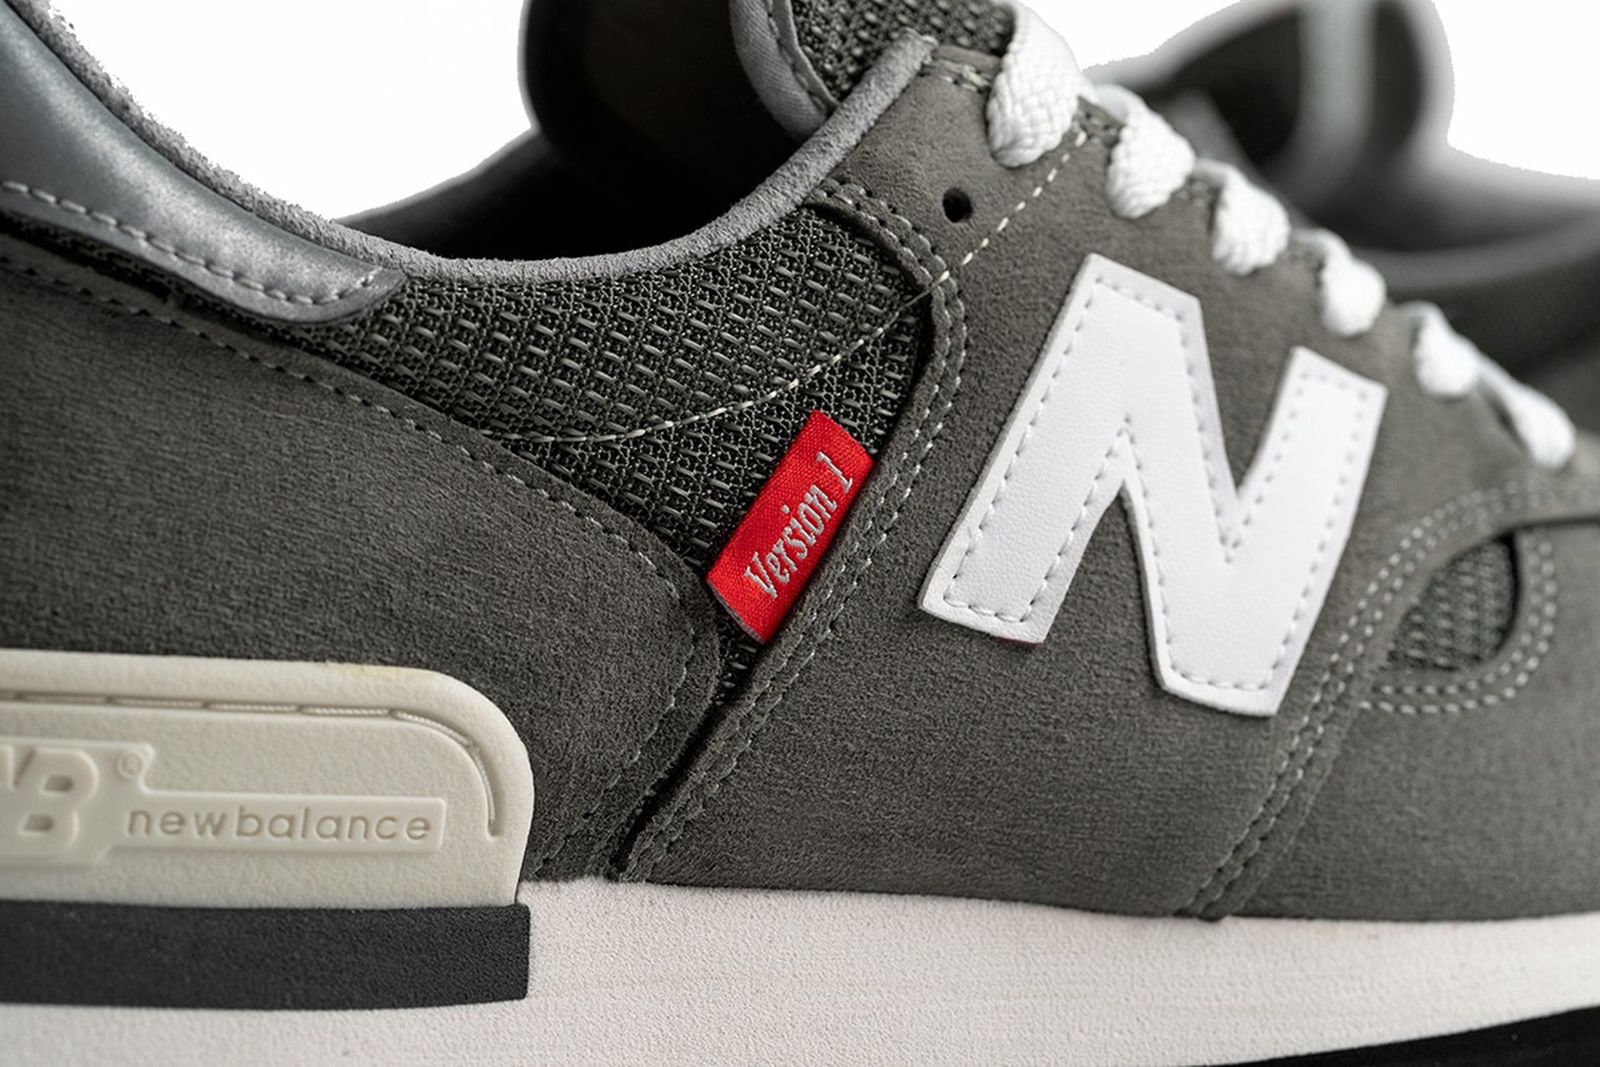 new-balance-made-990v1-release-date-price-03